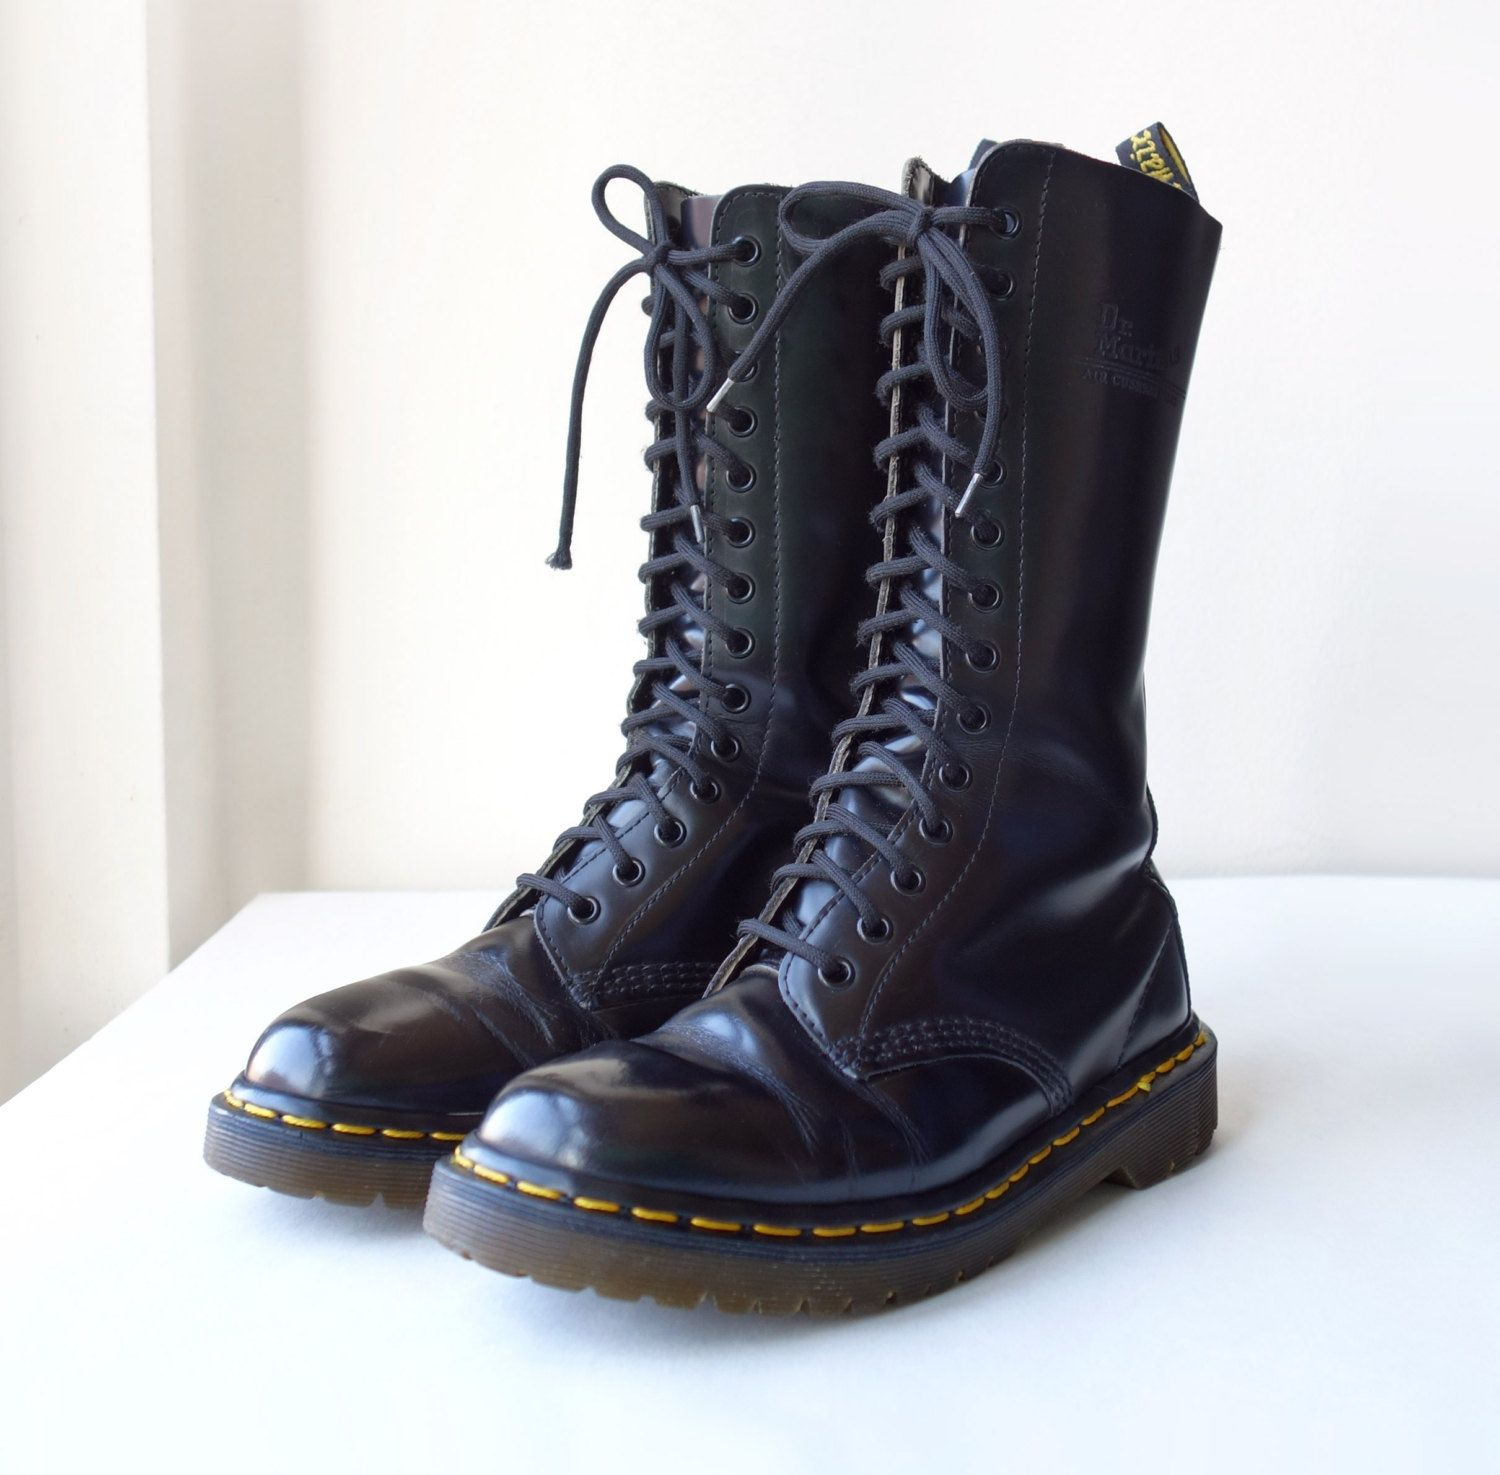 67cdddc14828c Vintage 90s Made in England Dr Martens 1914 14 Eye Black Lace Up Leather  Combat Boots